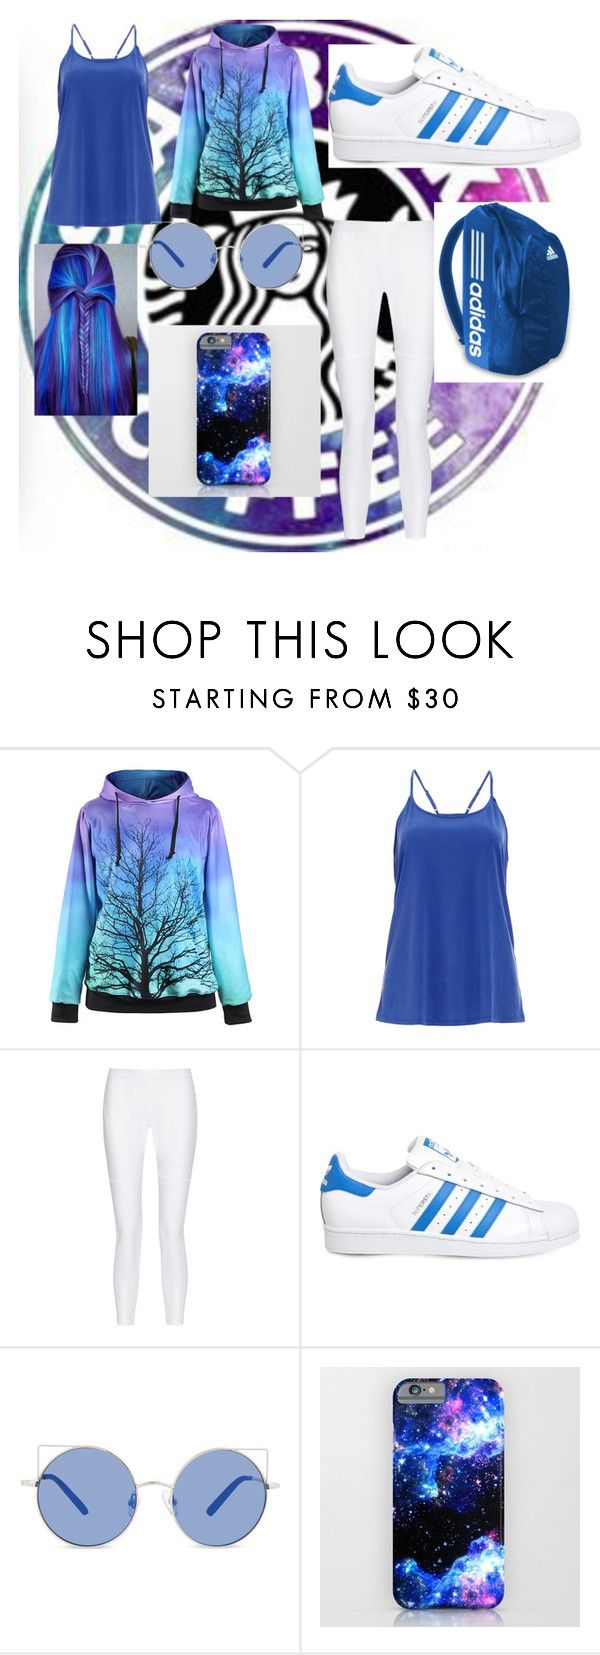 """GLOWIN WITH STARBUCKS"" by puertorico-386 ❤ liked on Polyvore featuring DailyLook, 10 Crosby Derek Lam, adidas and Matthew Williamson"